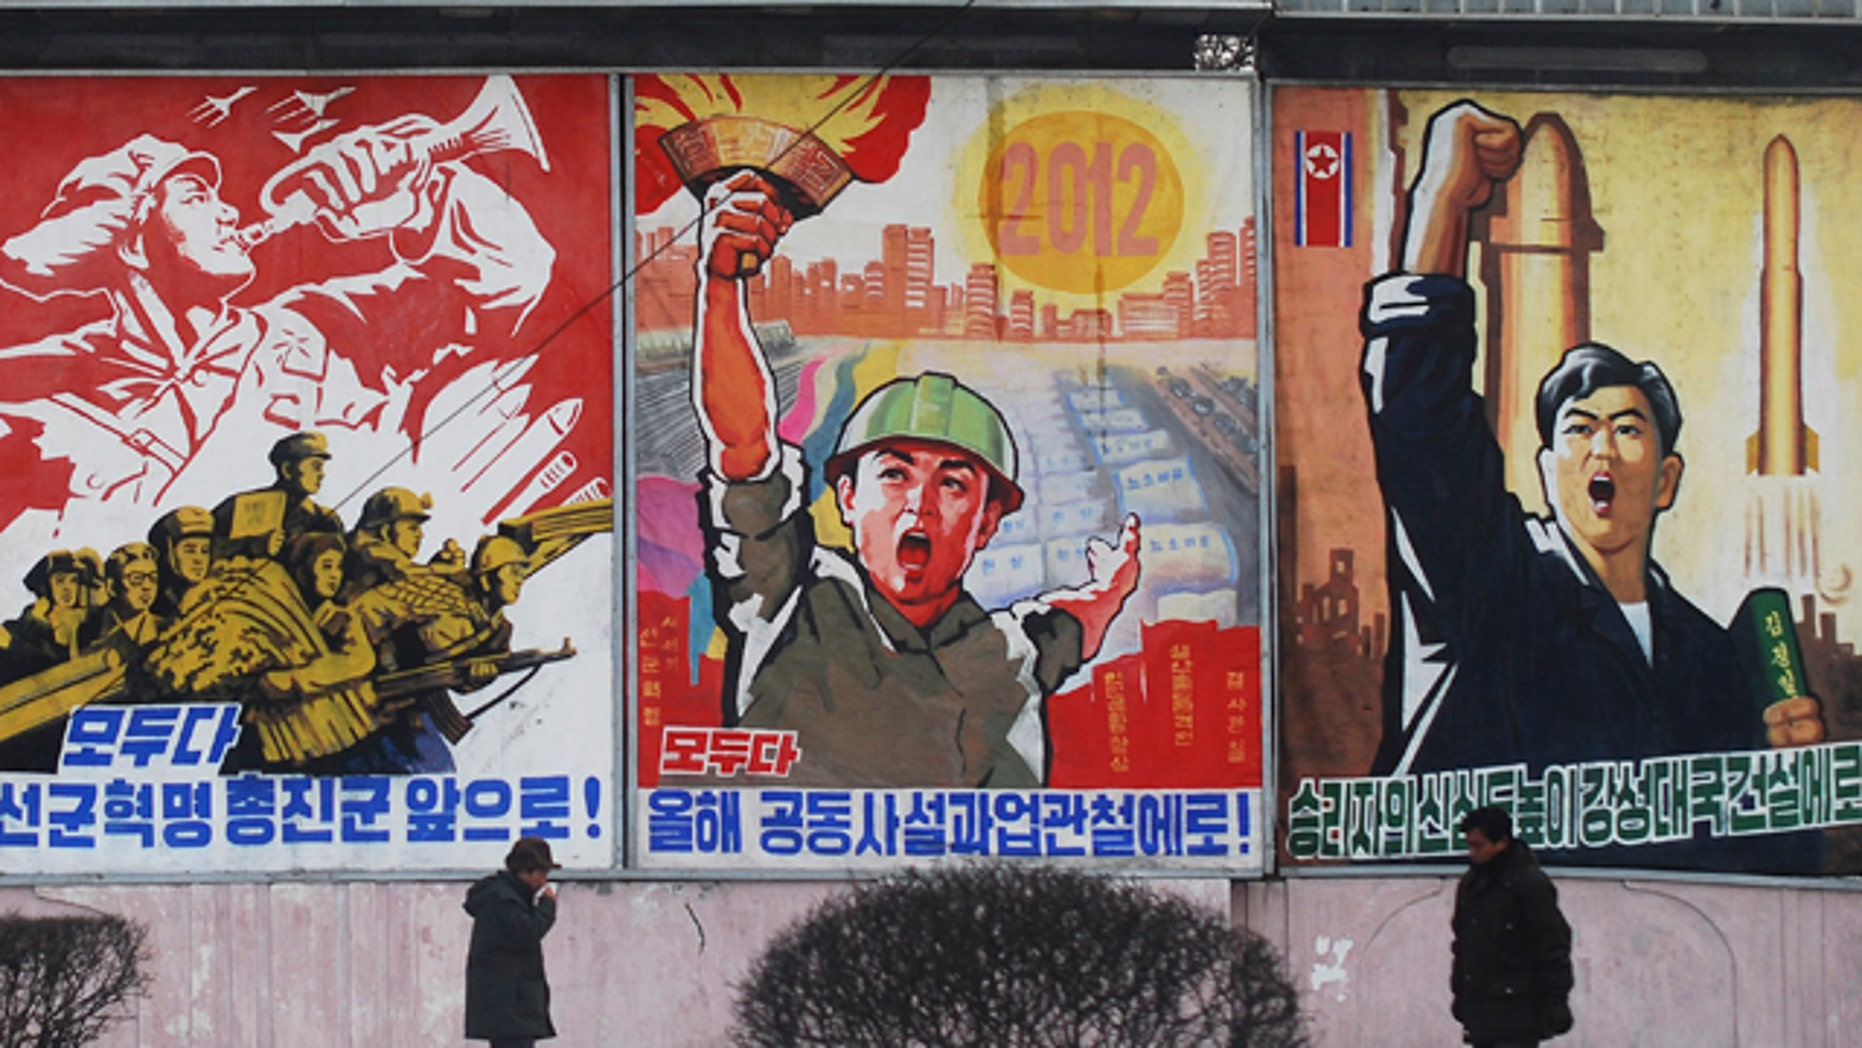 """In this Feb. 11, 2012 photo, residents walk past posters with popular slogans illustrating North Korea's main policies, on a street in Pyongyang, North Korea. From left to right, they read """"Let's march toward a military first revolution,"""" """"Let's accomplish the tasks laid out in this year's joint new year's editorial,' and """"Devote the victors' hearts to the building of a strong nation."""""""